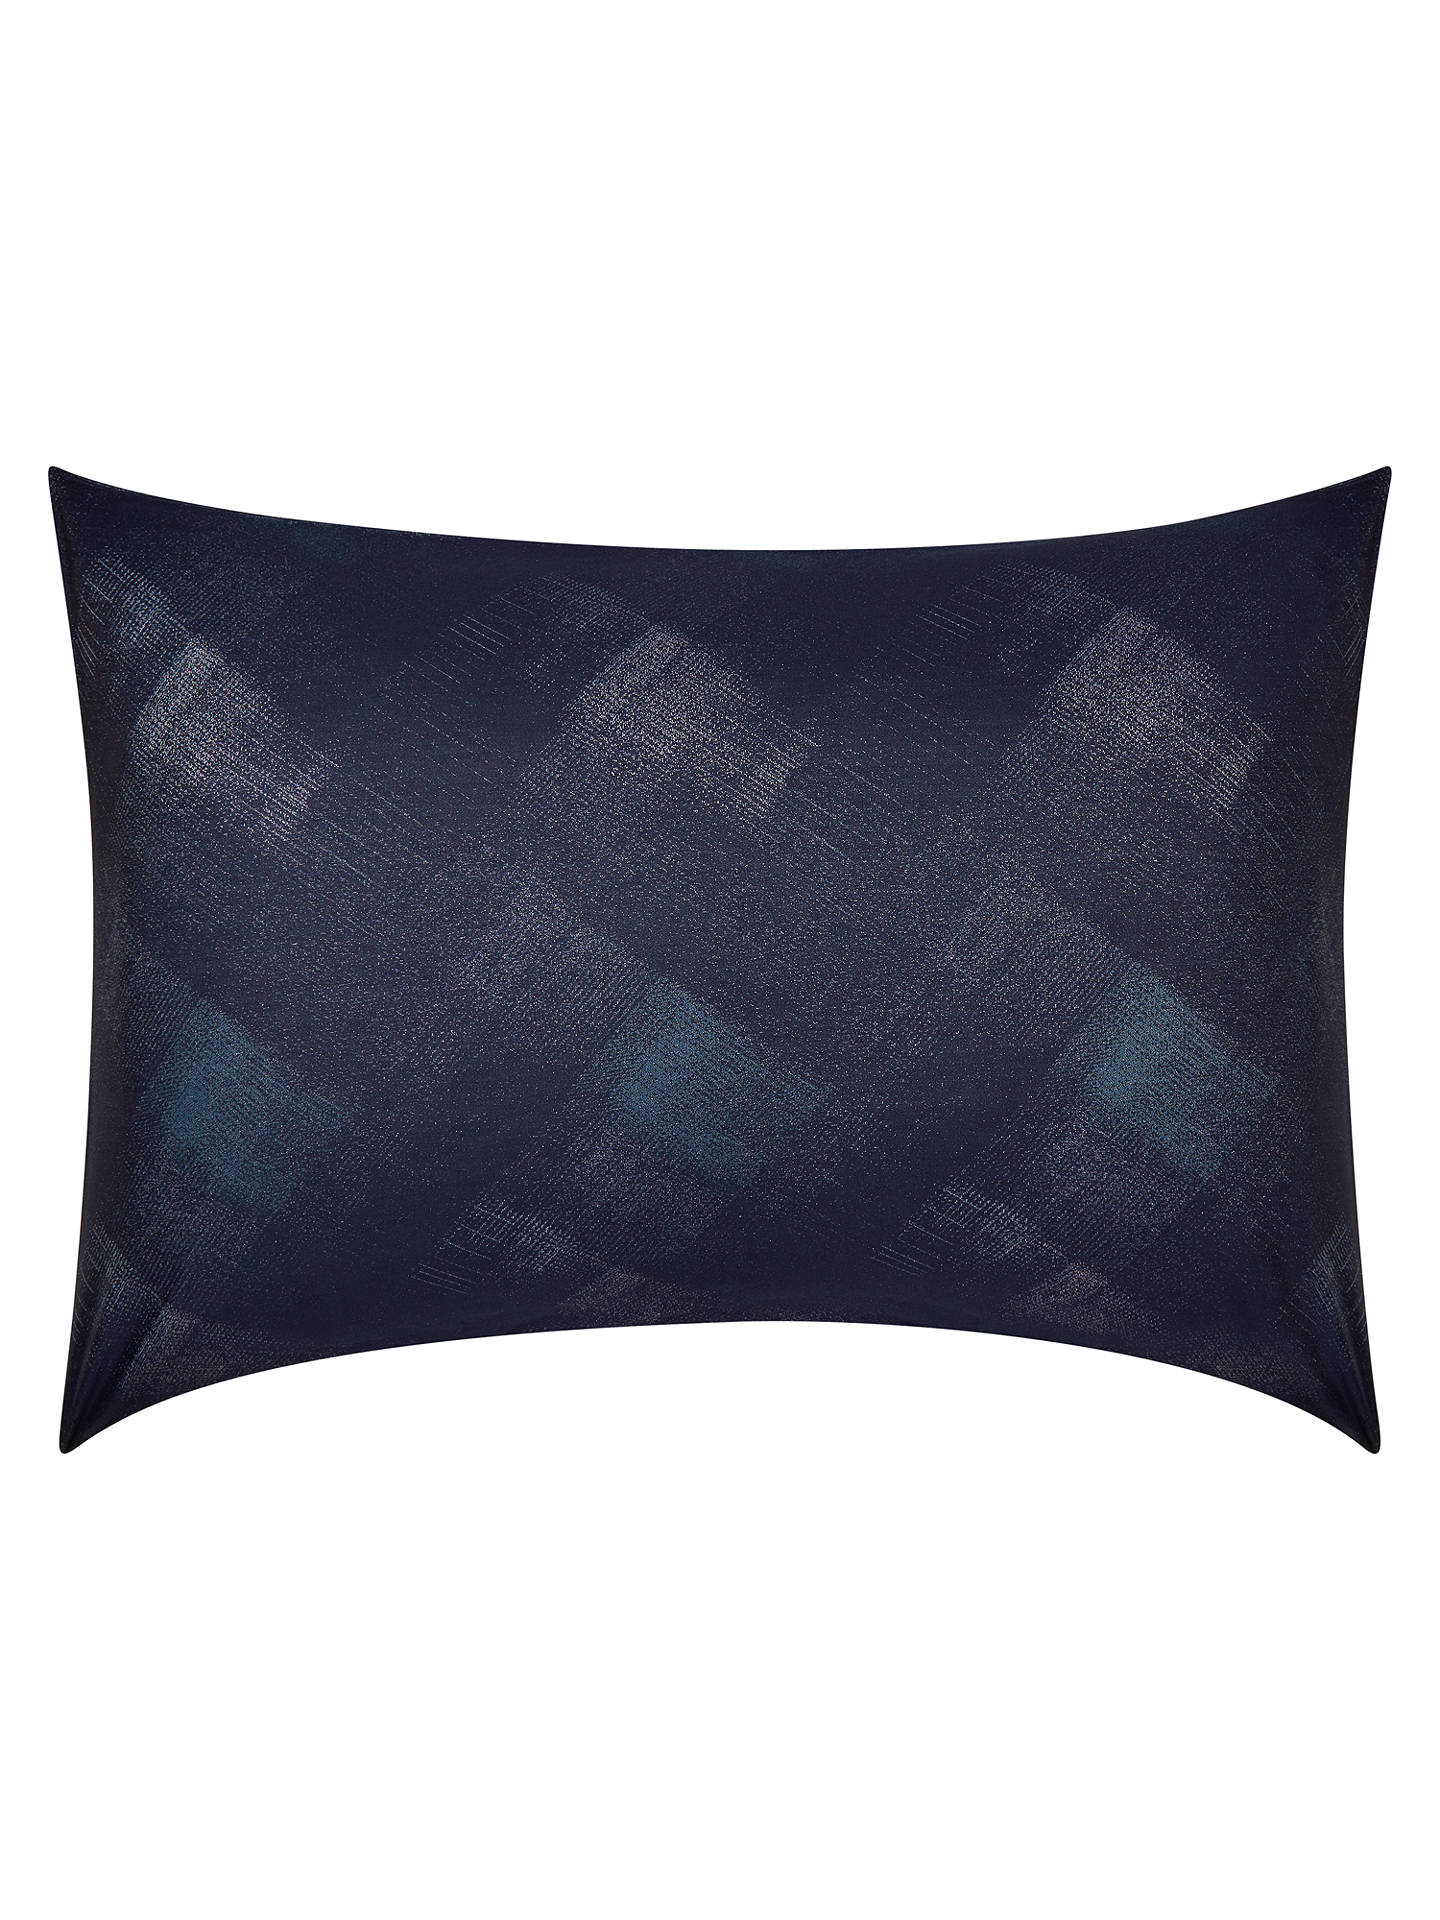 BuyDesign Project by John Lewis No.154 Standard Pillowcase, Blue Online at johnlewis.com